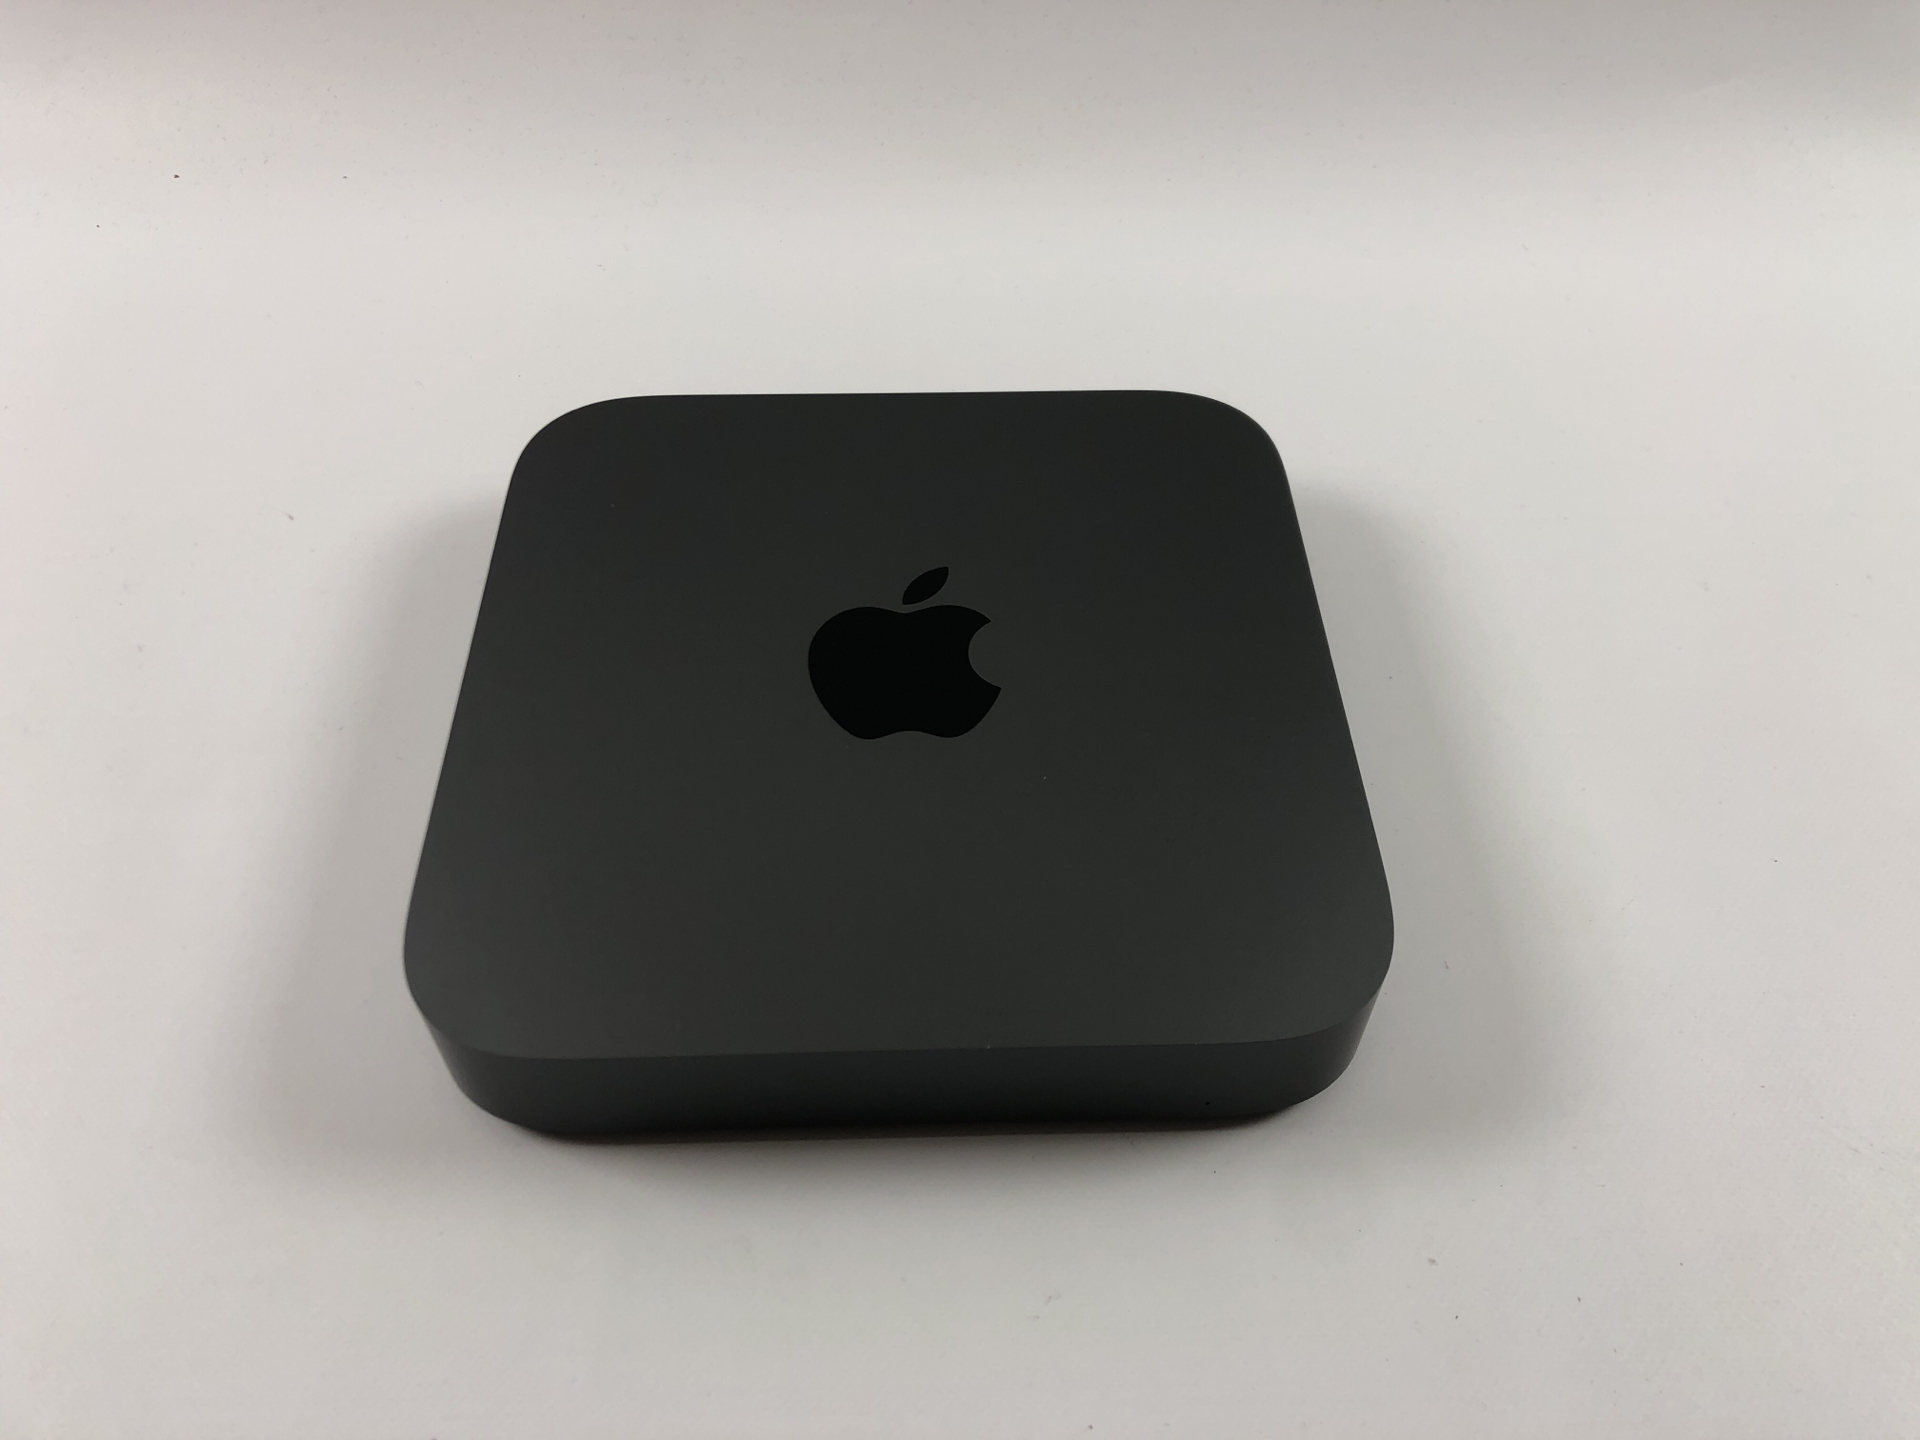 Mac Mini Late 2018 (Intel Quad-Core i3 3.6 GHz 64 GB RAM 128 GB SSD), Intel Quad-Core i3 3.6 GHz, 64 GB RAM, 128 GB SSD, immagine 1